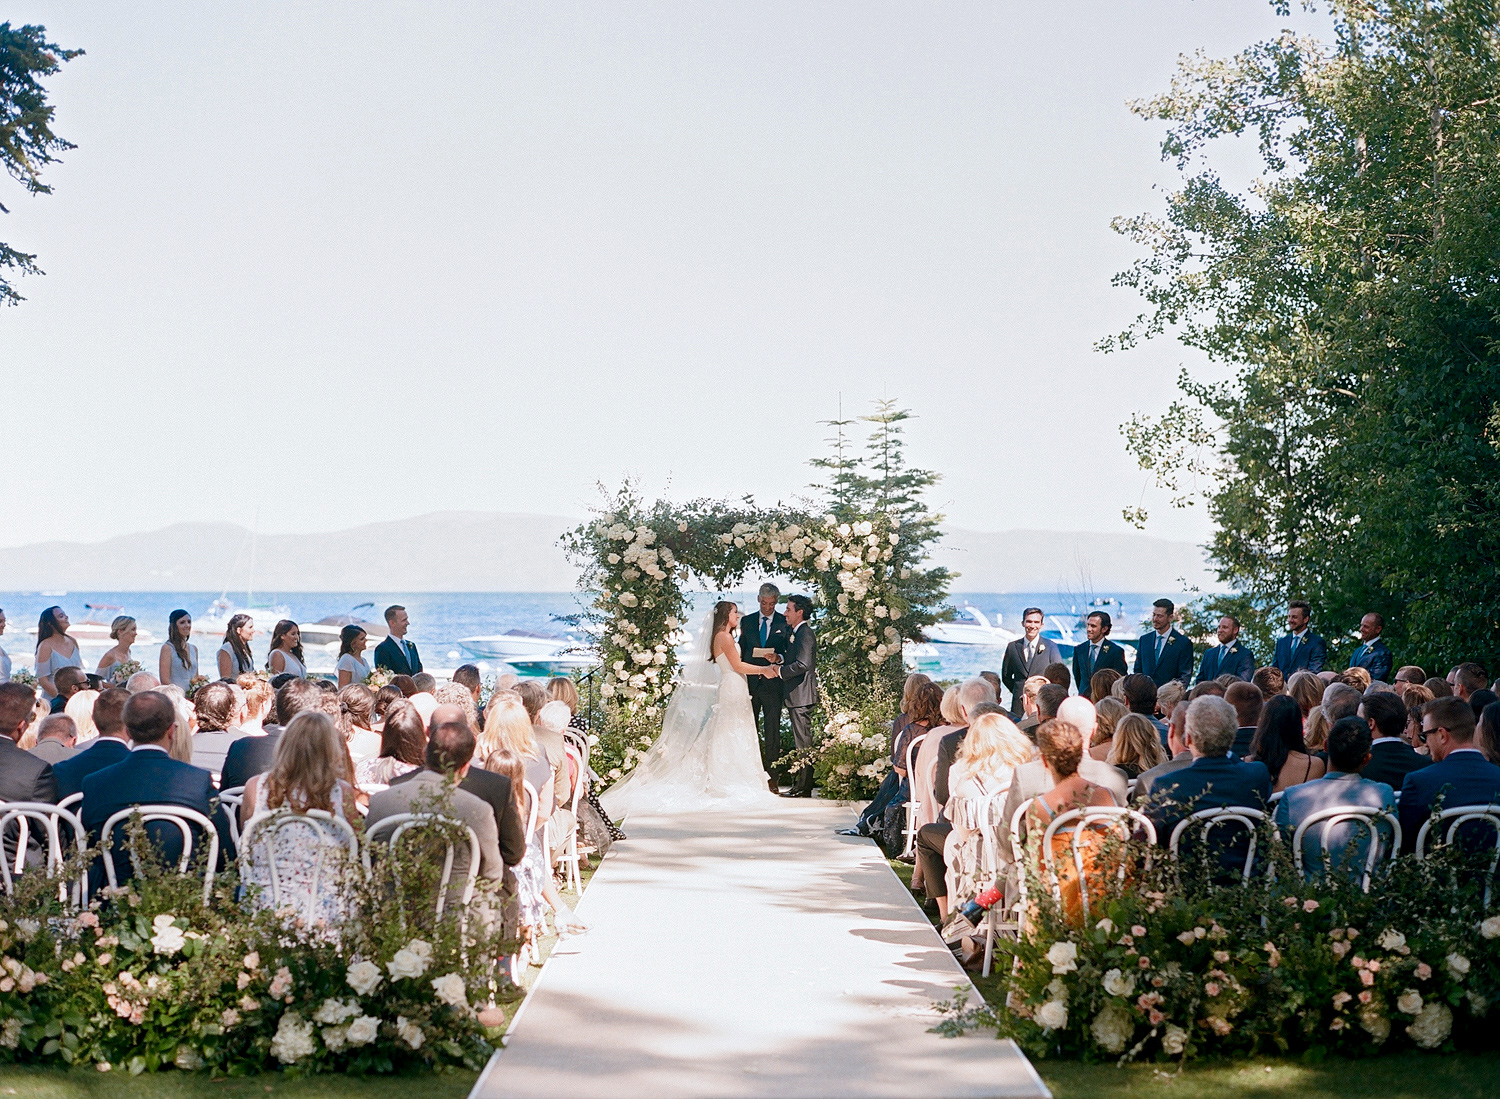 Natalie and Grant wedding ceremony outdoors near Lake Tahoe